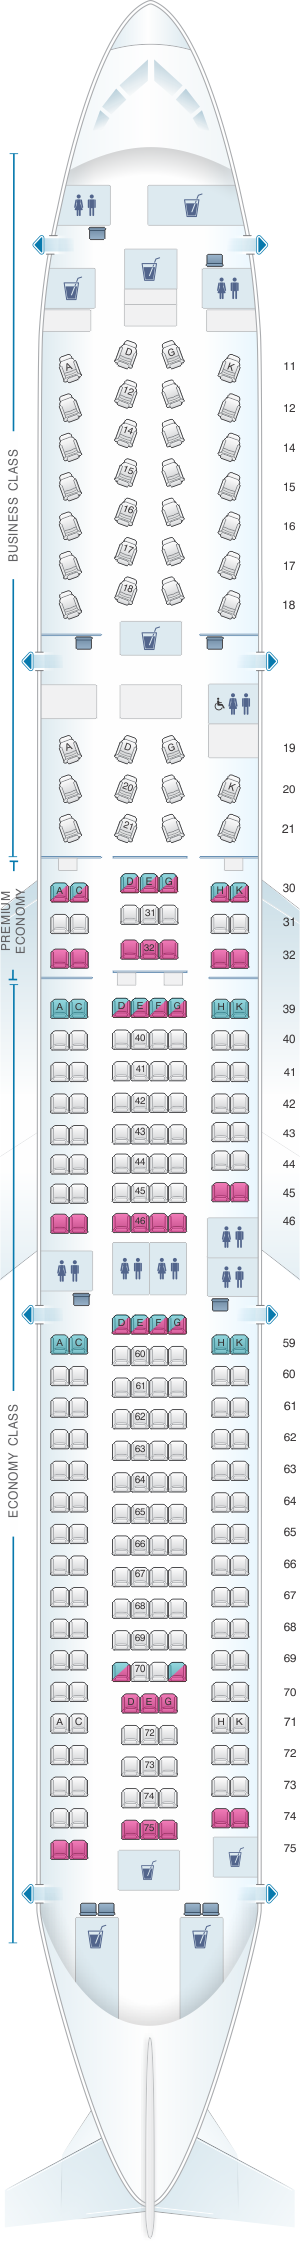 Seat map for Cathay Pacific Airways Airbus A330 300 (33K)